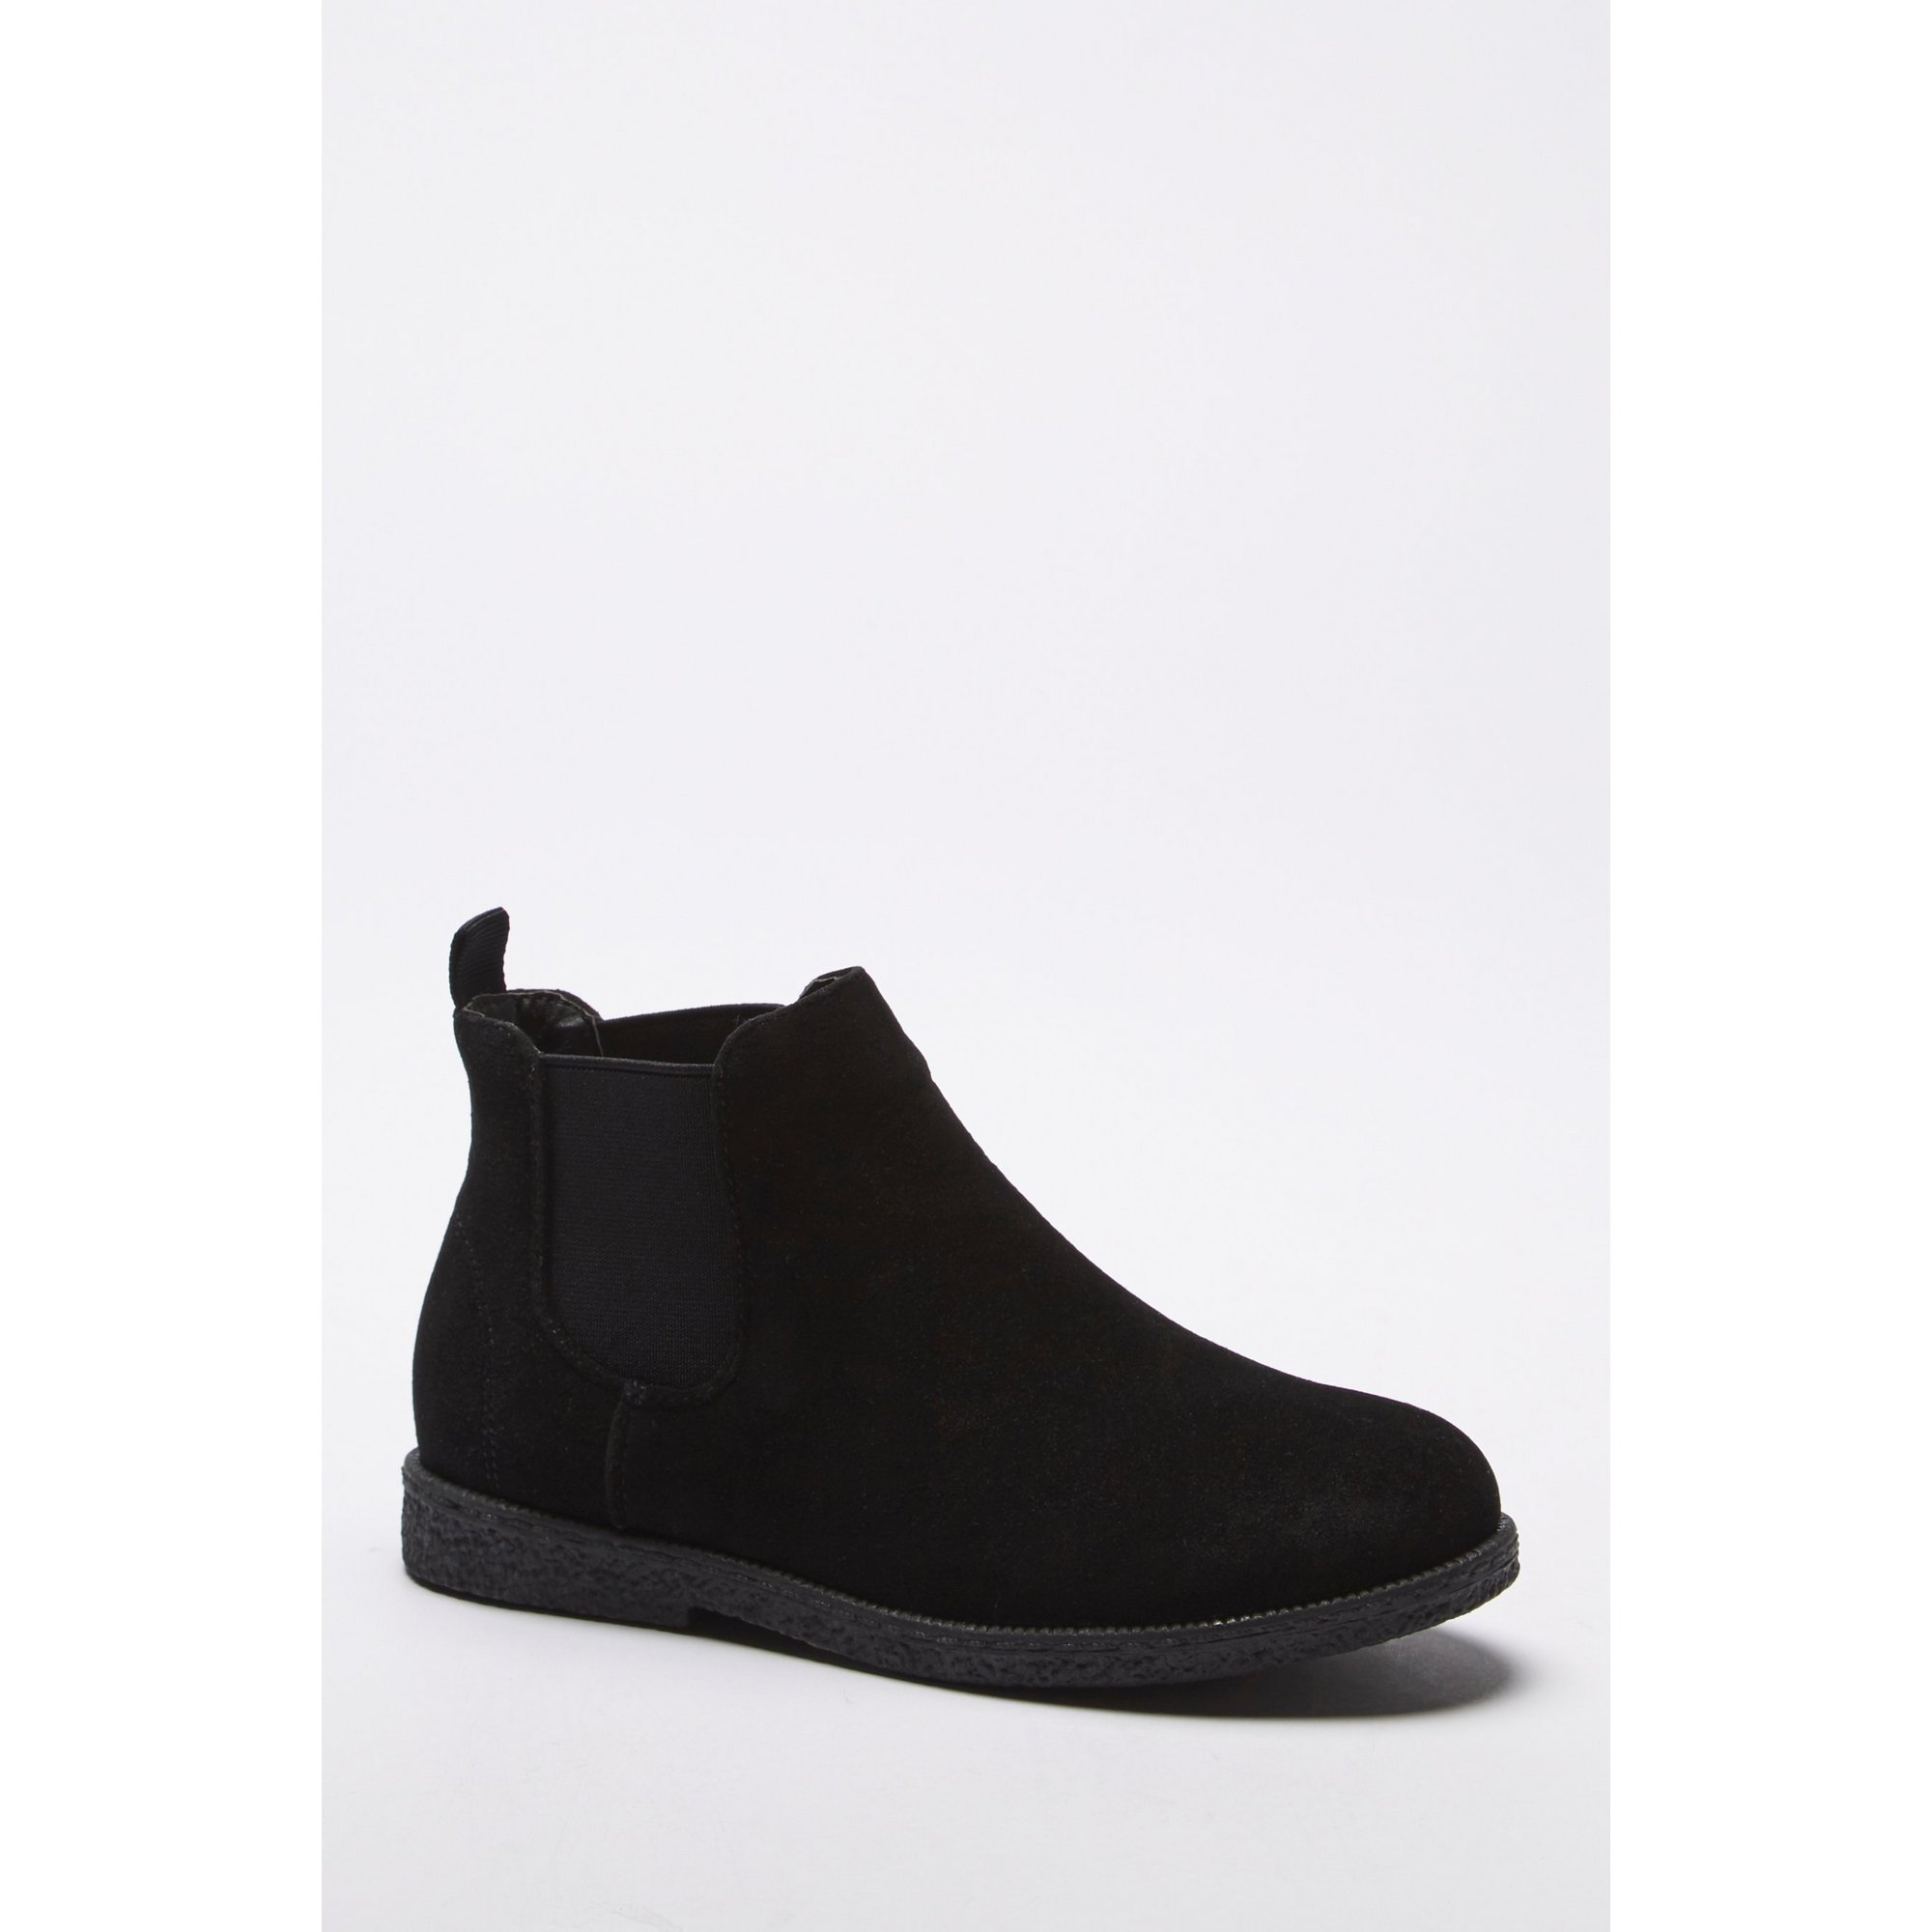 Image of Boys Chelsea Boots